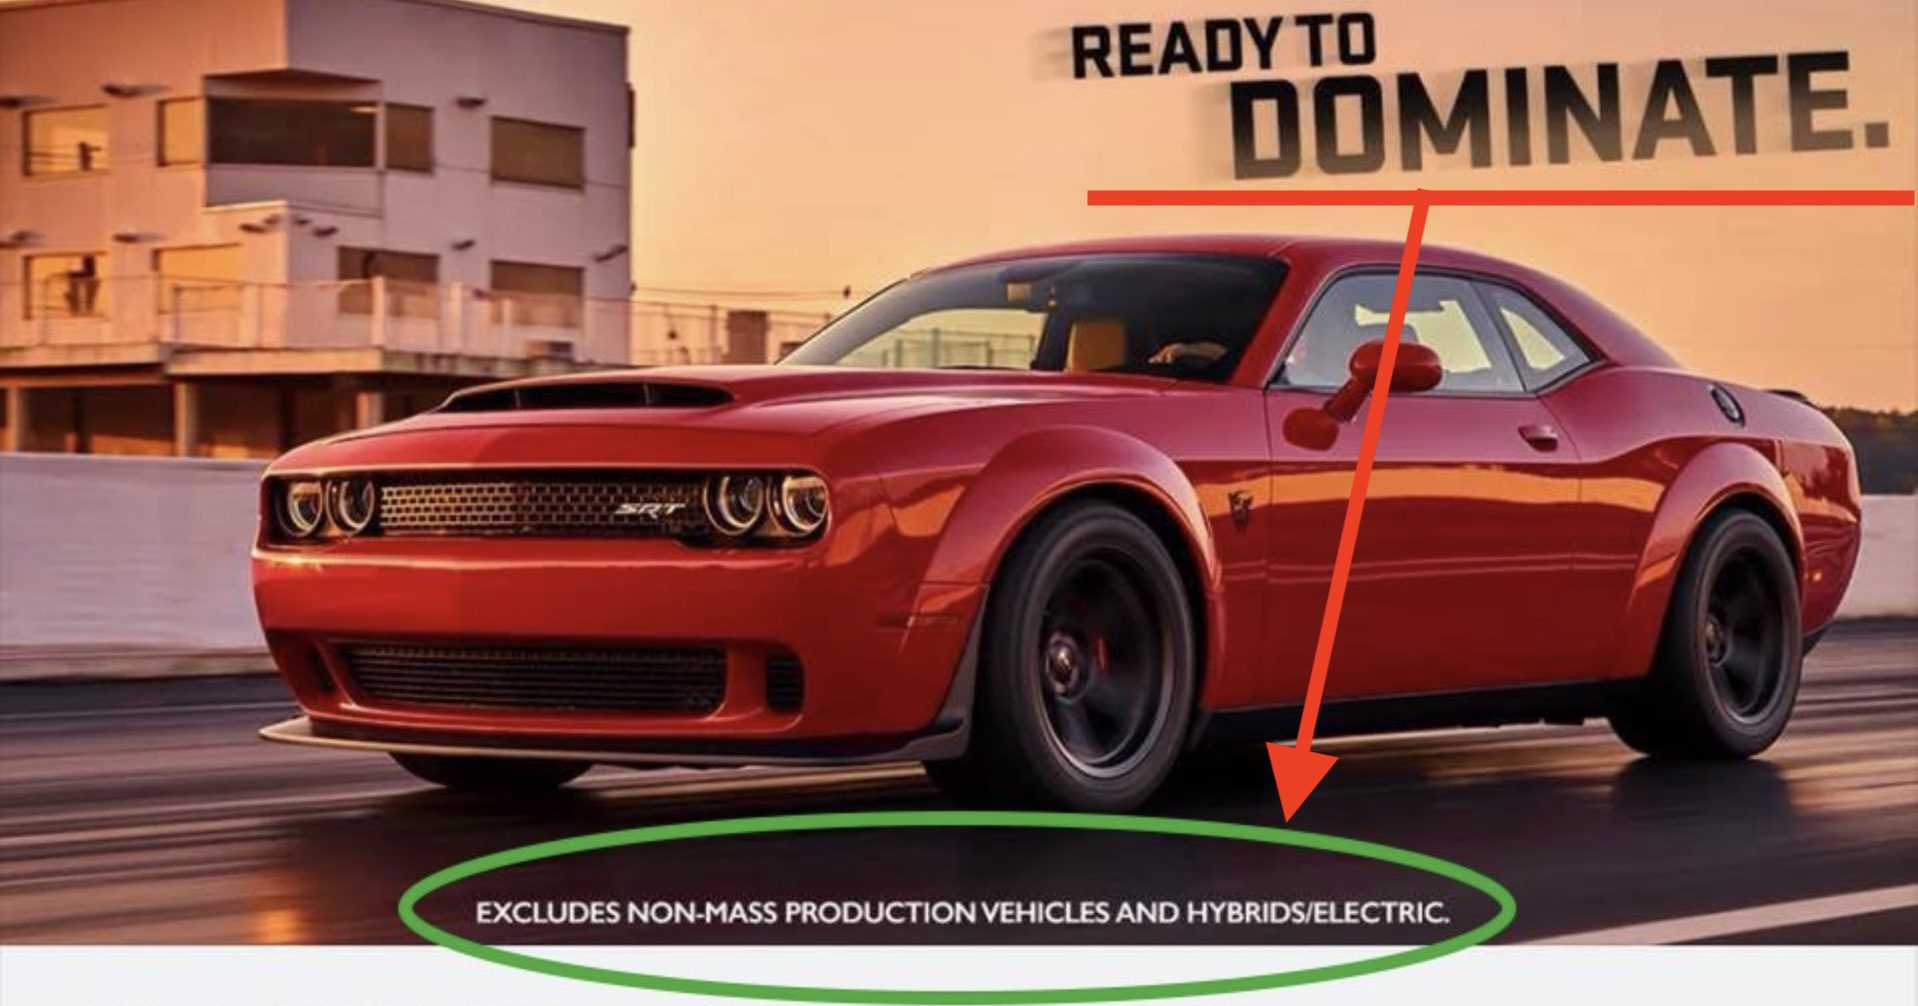 Dodge Challenger Demon Ad Turns Into Best Electric Vehicle